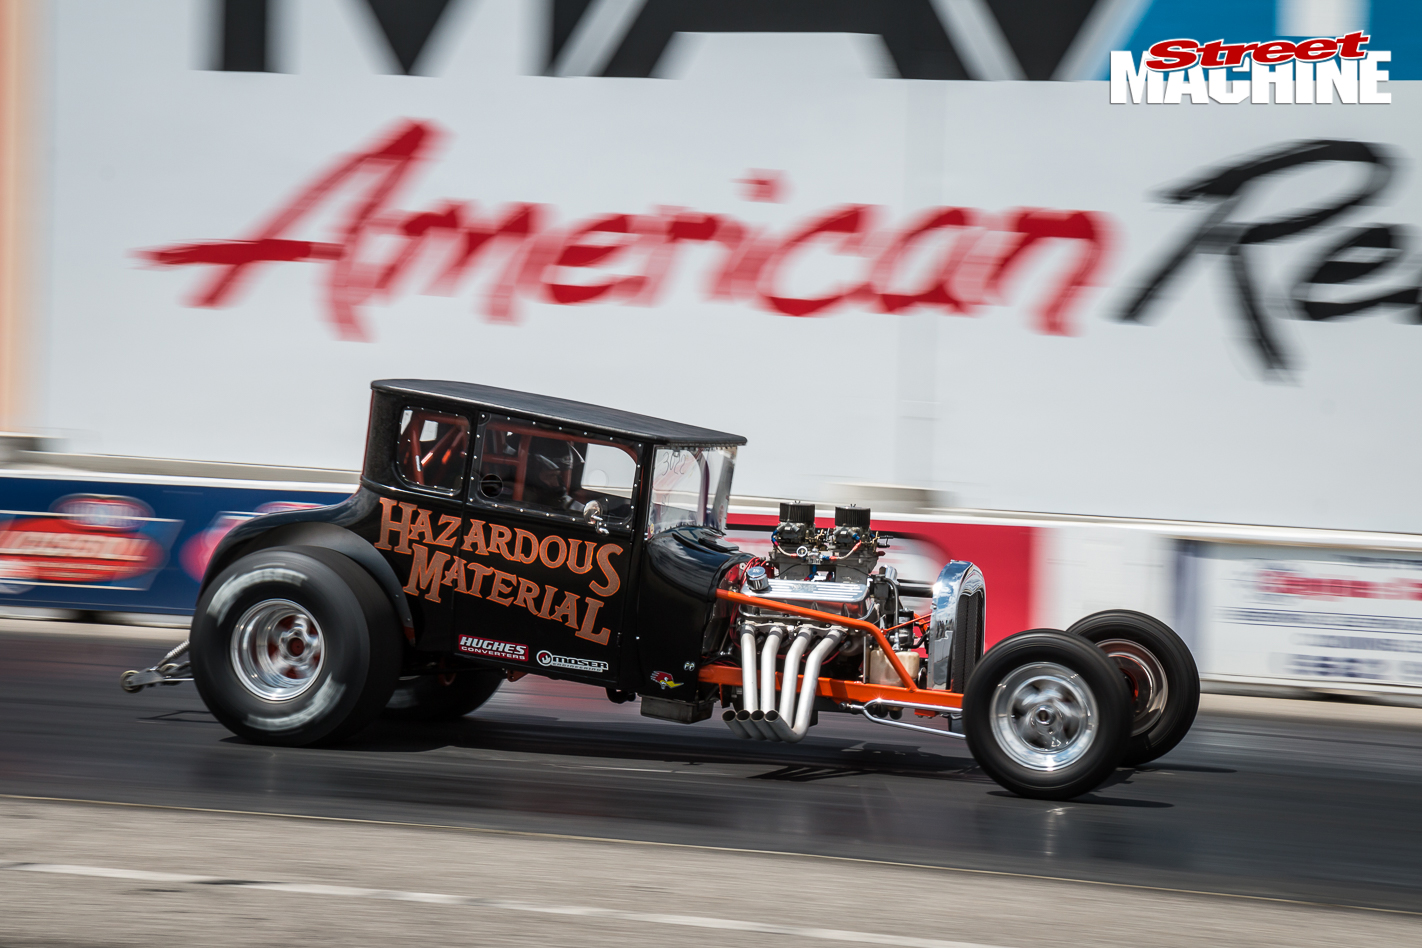 Antique -Nationals -USA-9103